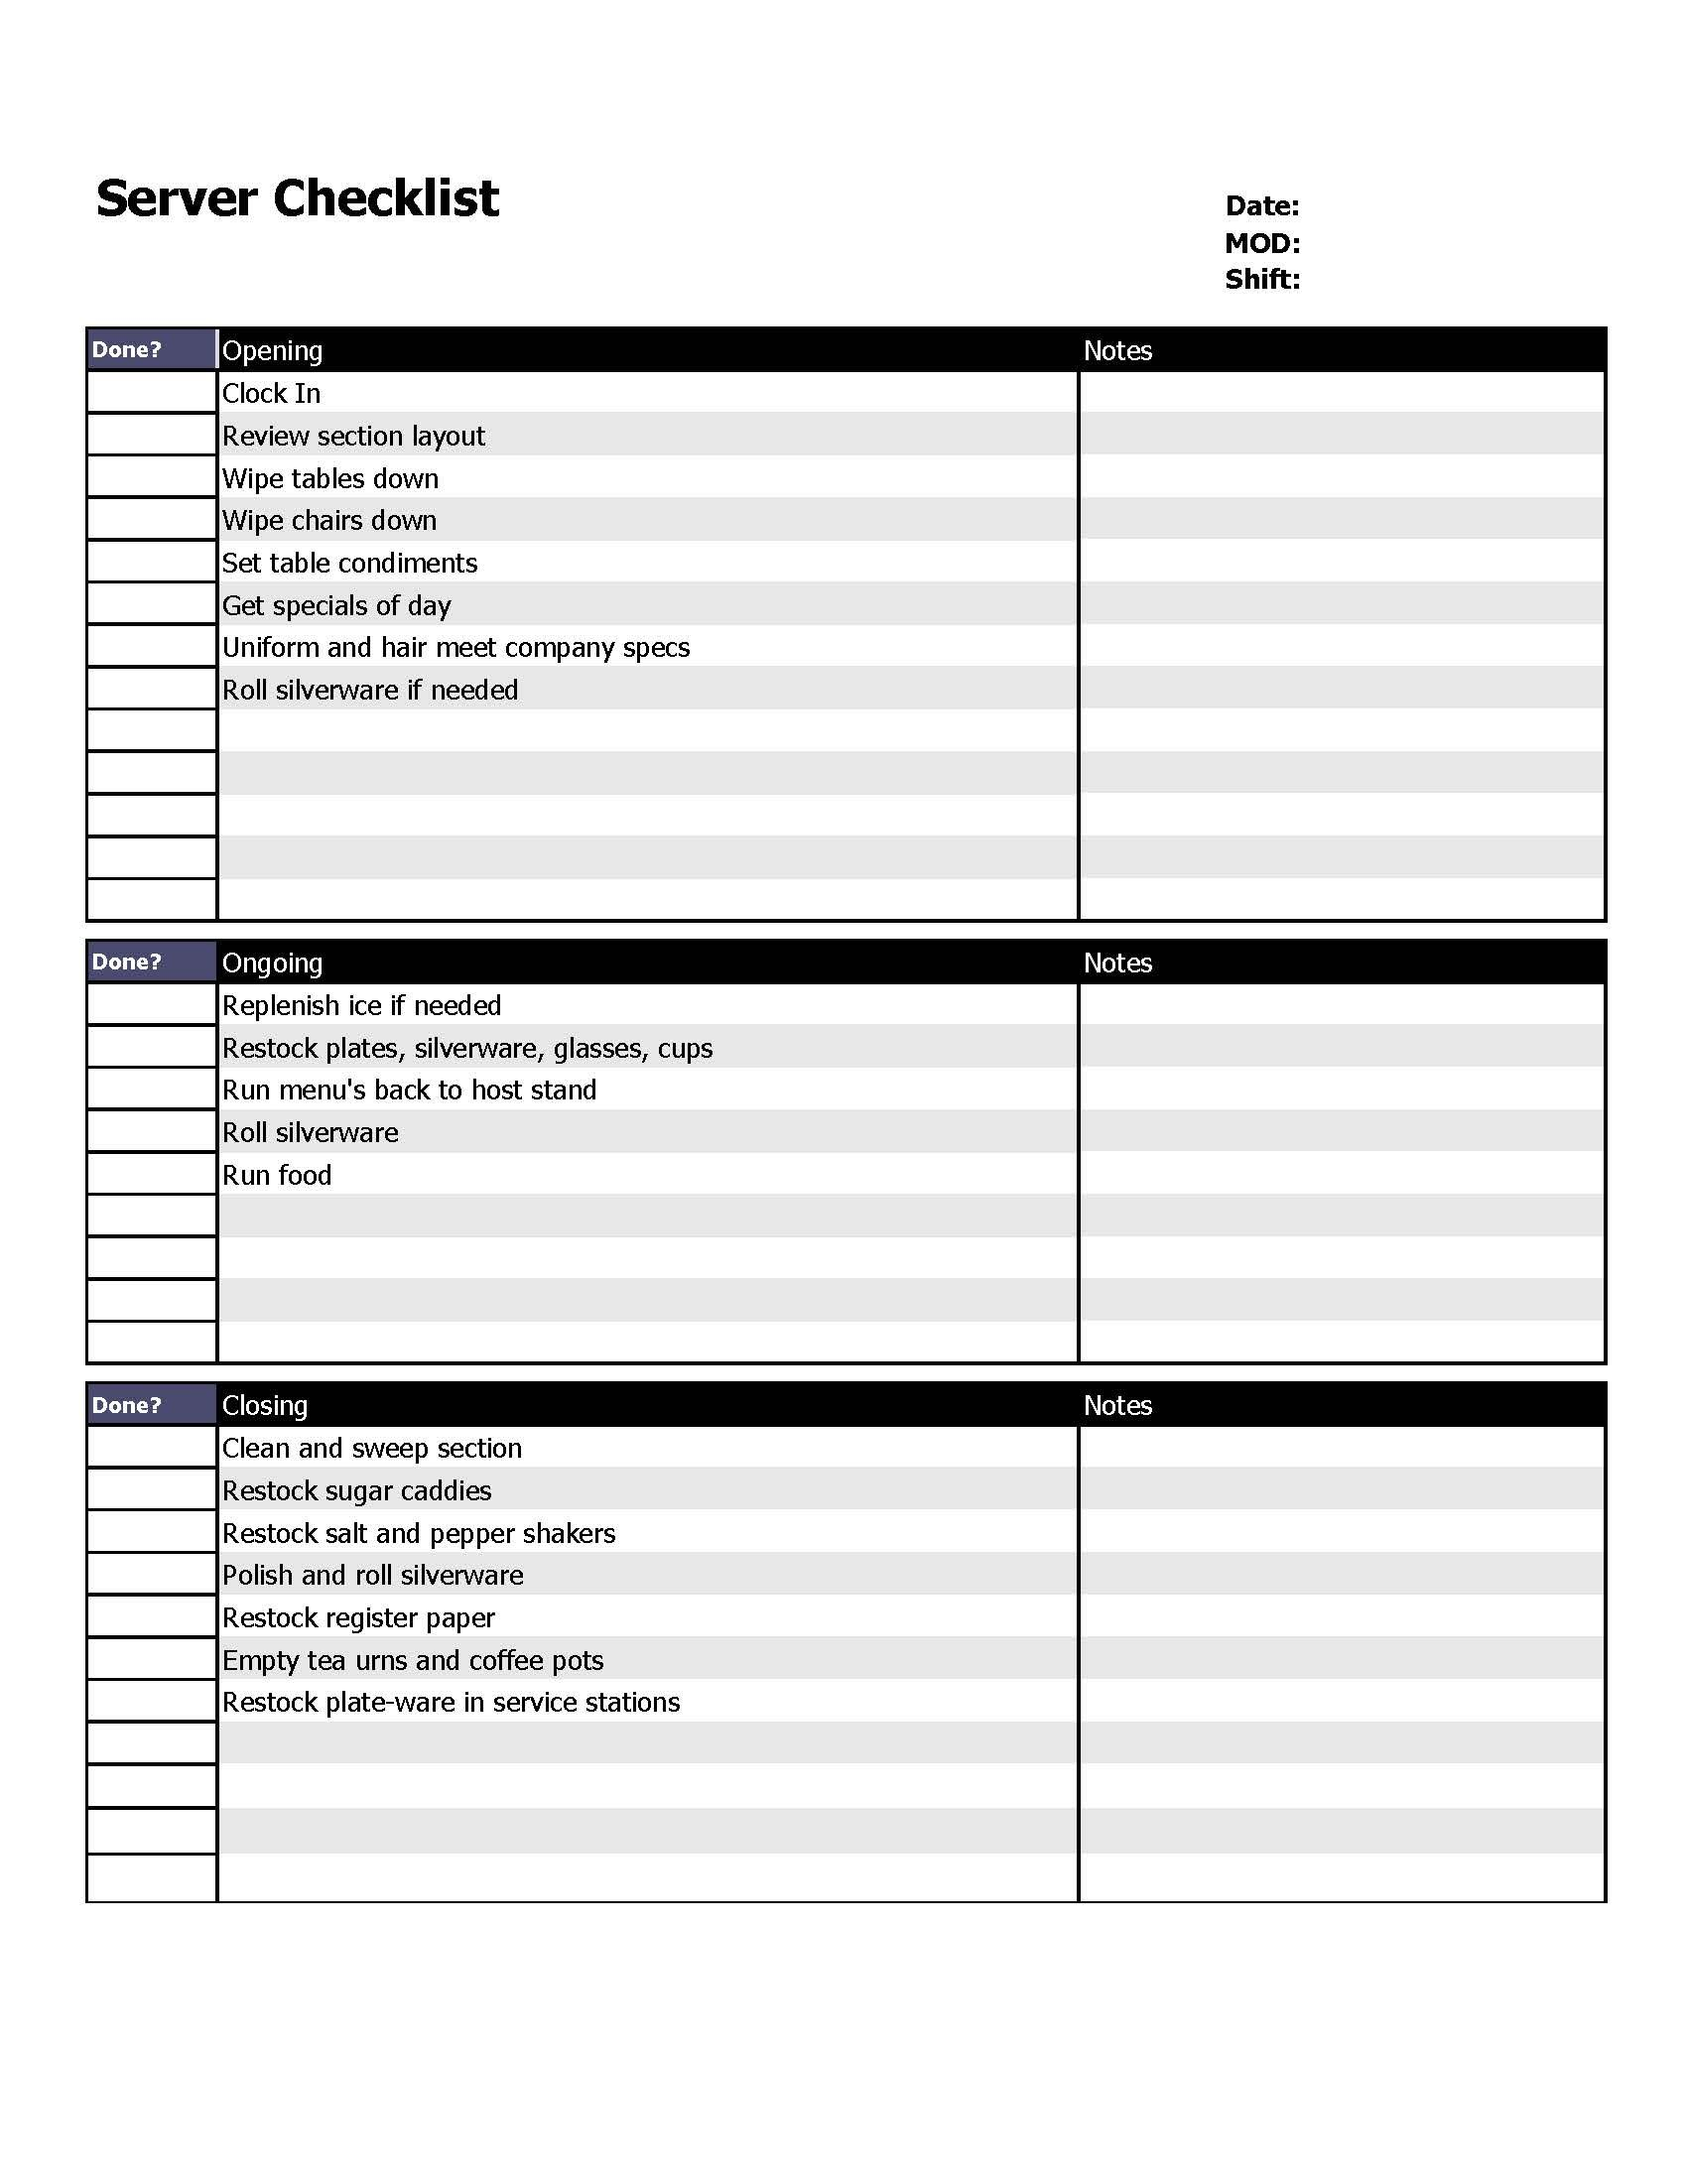 Restaurant server checklist form. | Organizing | Pinterest ...